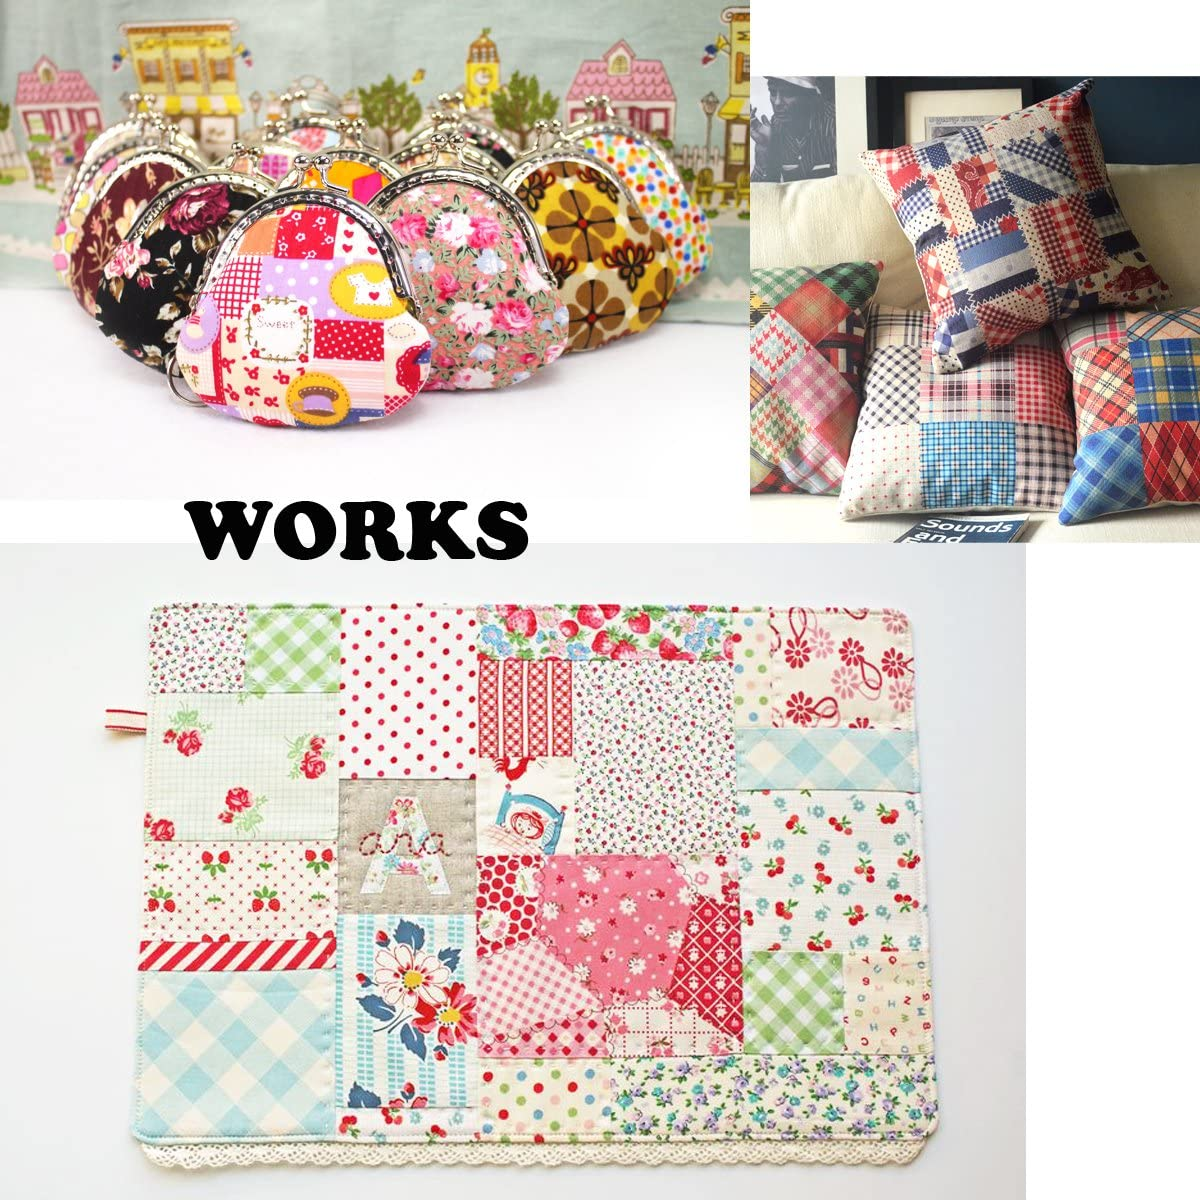 200pcs, 10 x 10 cm flic-flac Cotton Craft Fabric Bundle Squares Patchwork Lint DIY Sewing Scrapbooking Quilting Dot Pattern Artcraft